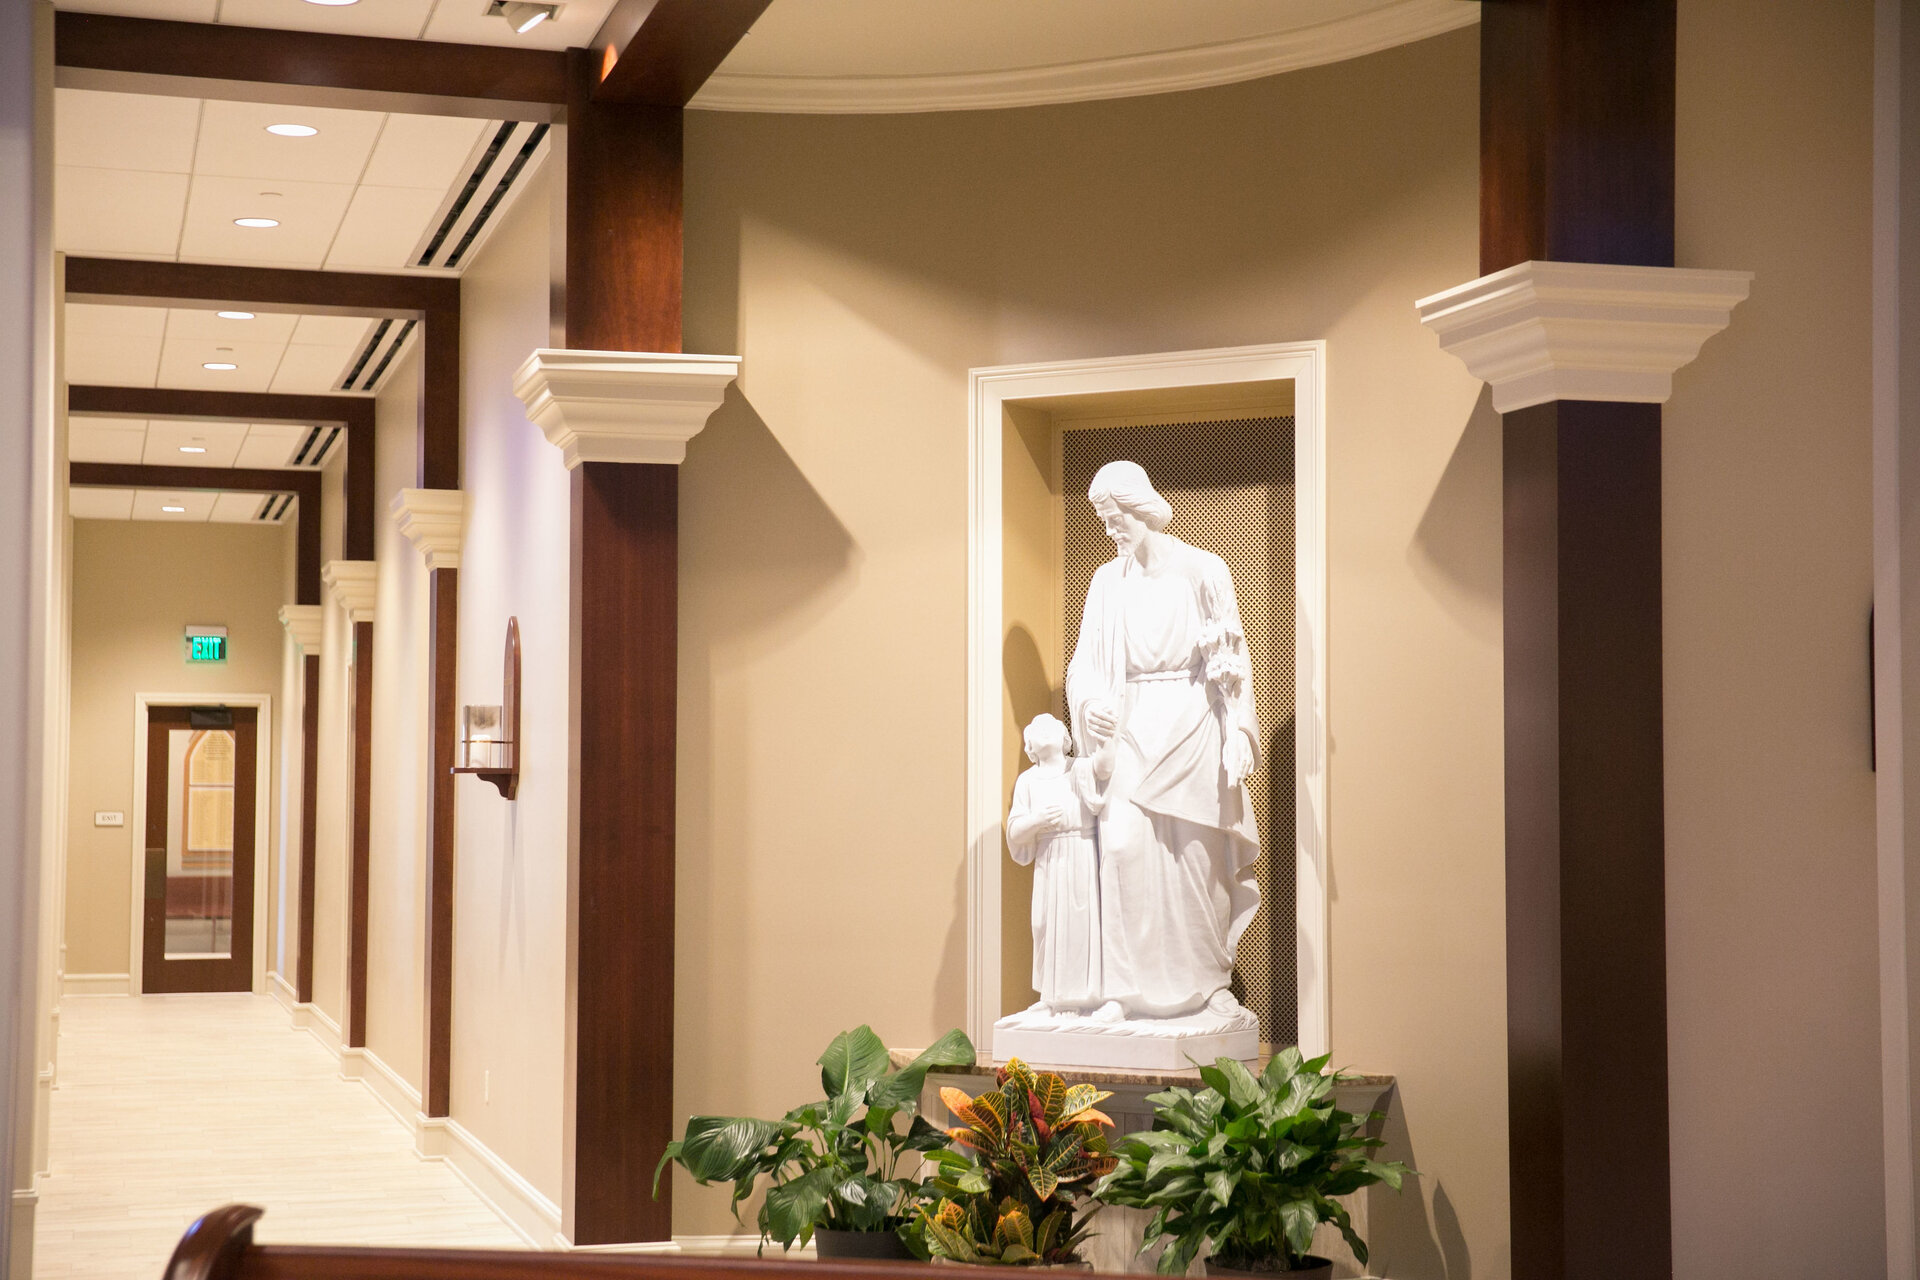 Detailed work provides a seamless and clean design at St. George Catholic Church in Baton Rouge, Louisiana. Gator Millworks developed the decorative trim, arches and the stained millwork pieces throughout the space.